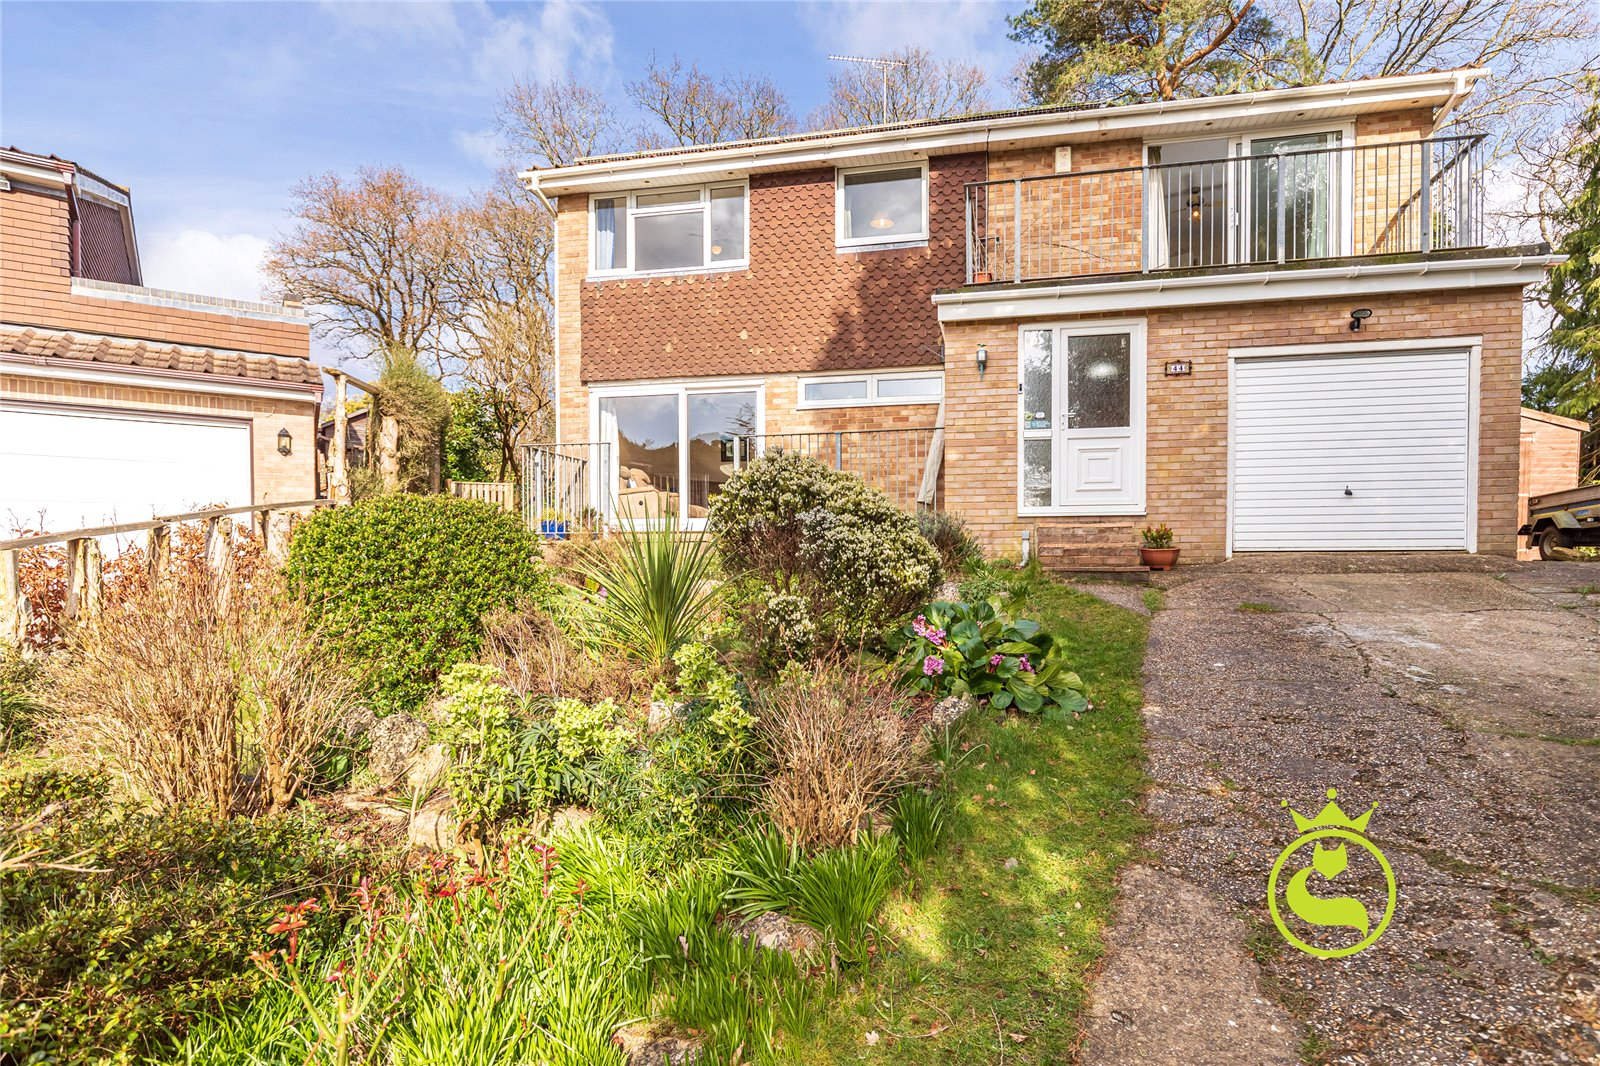 5 bed house for sale in West Way, Broadstone - Property Image 1